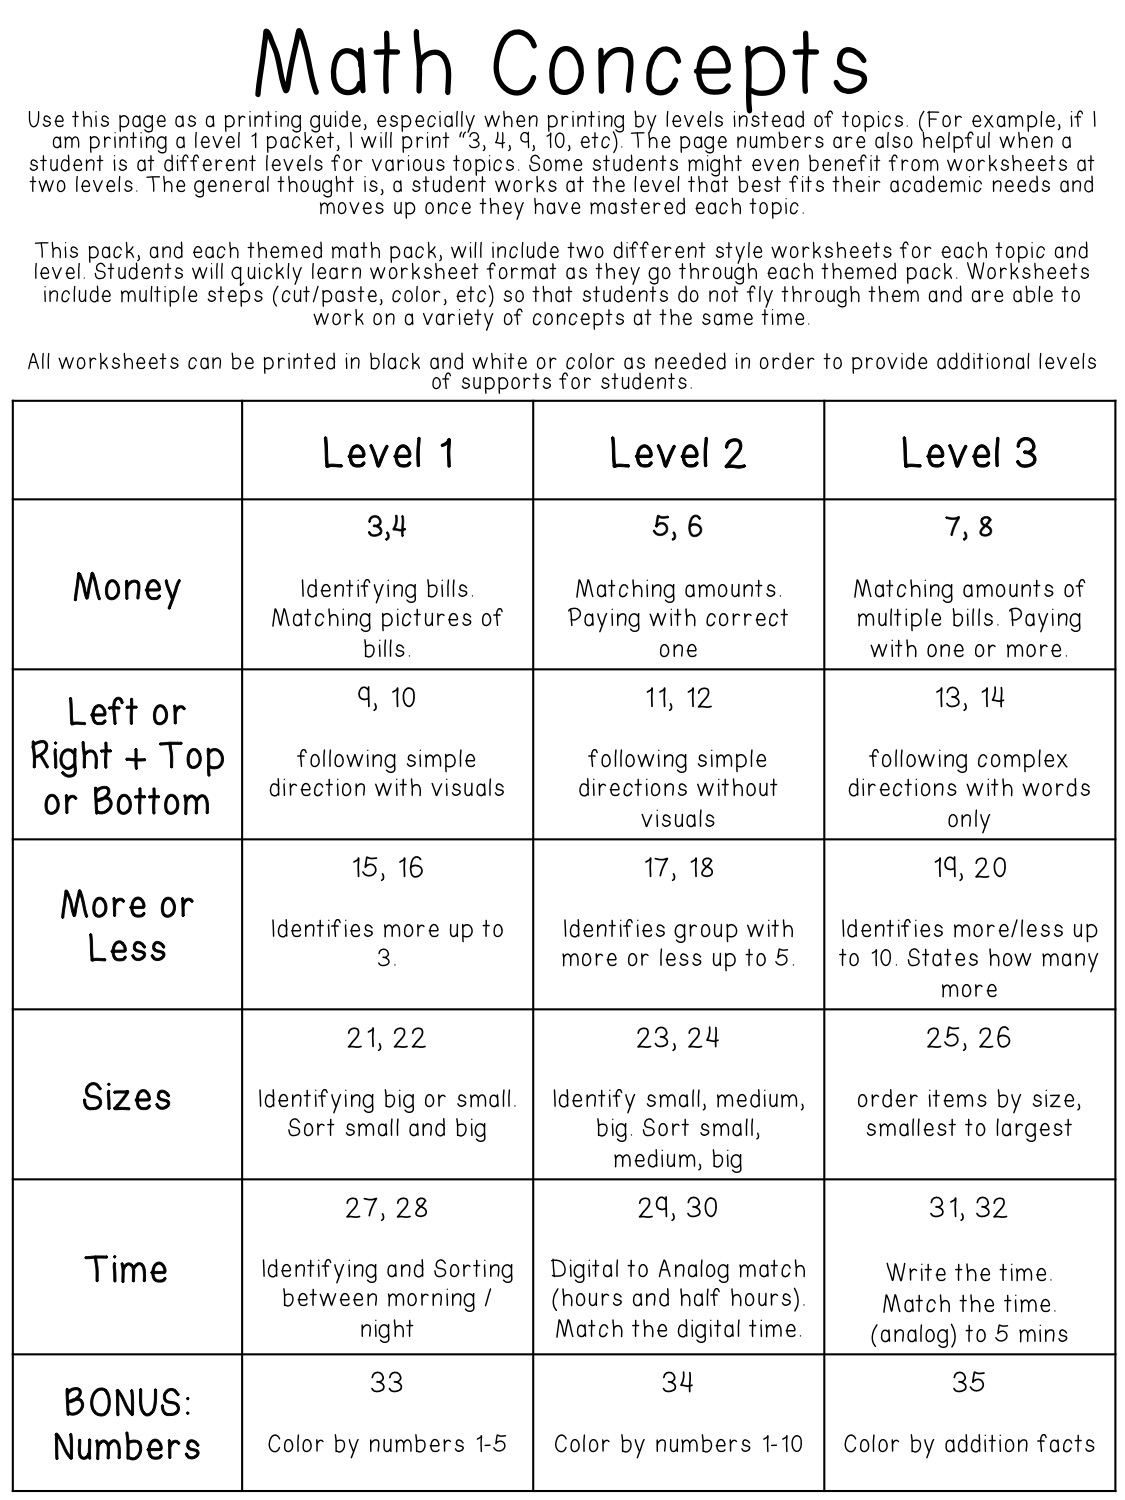 Addition Worksheets thanksgiving addition worksheets : Math Life Skill Worksheets: Thanksgiving Themed - Breezy Special Ed